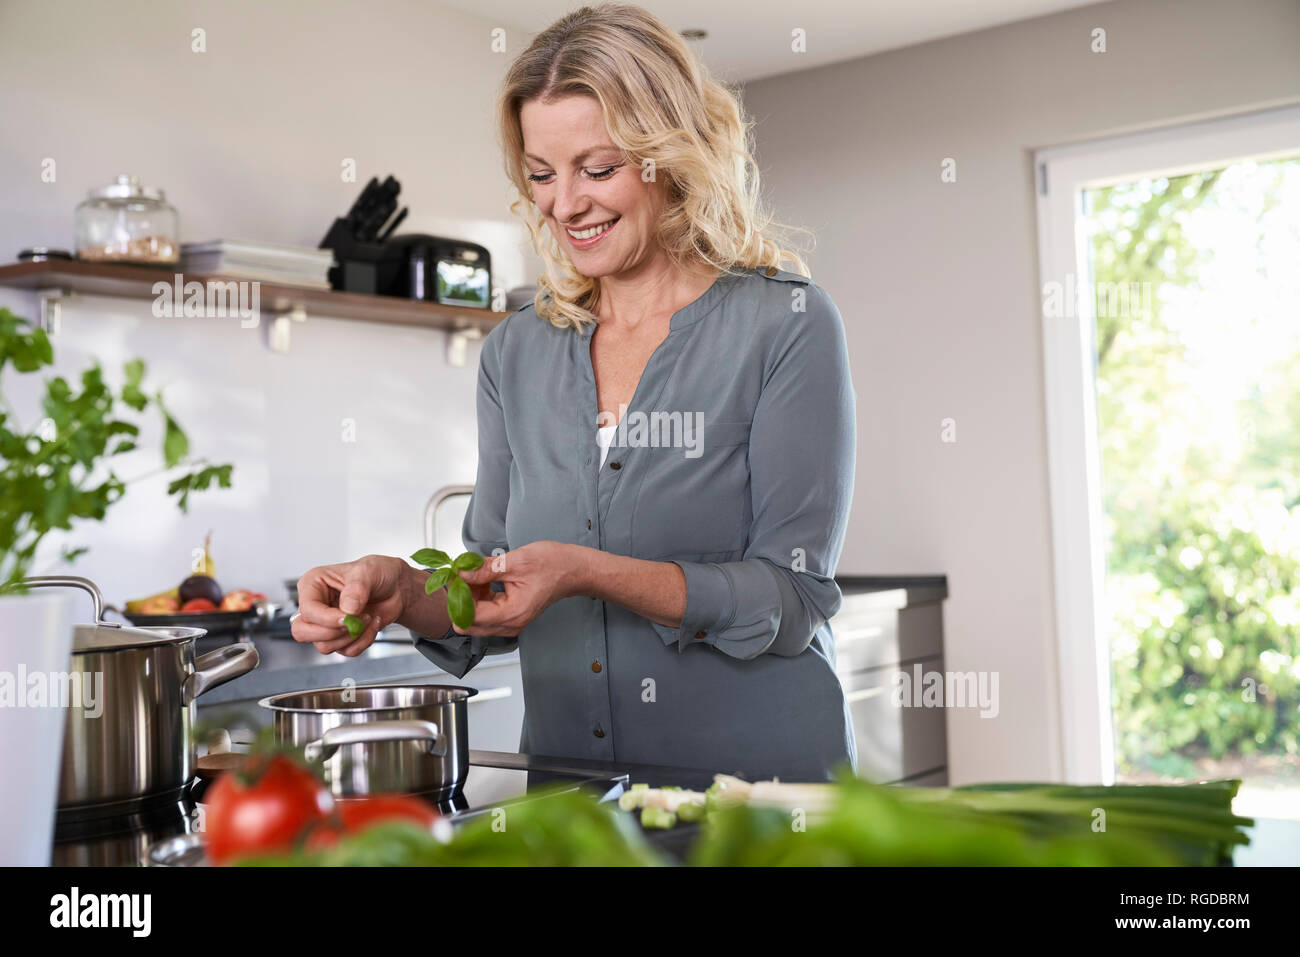 Smiling woman cooking in kitchen putting basil into cooking pot - Stock Image